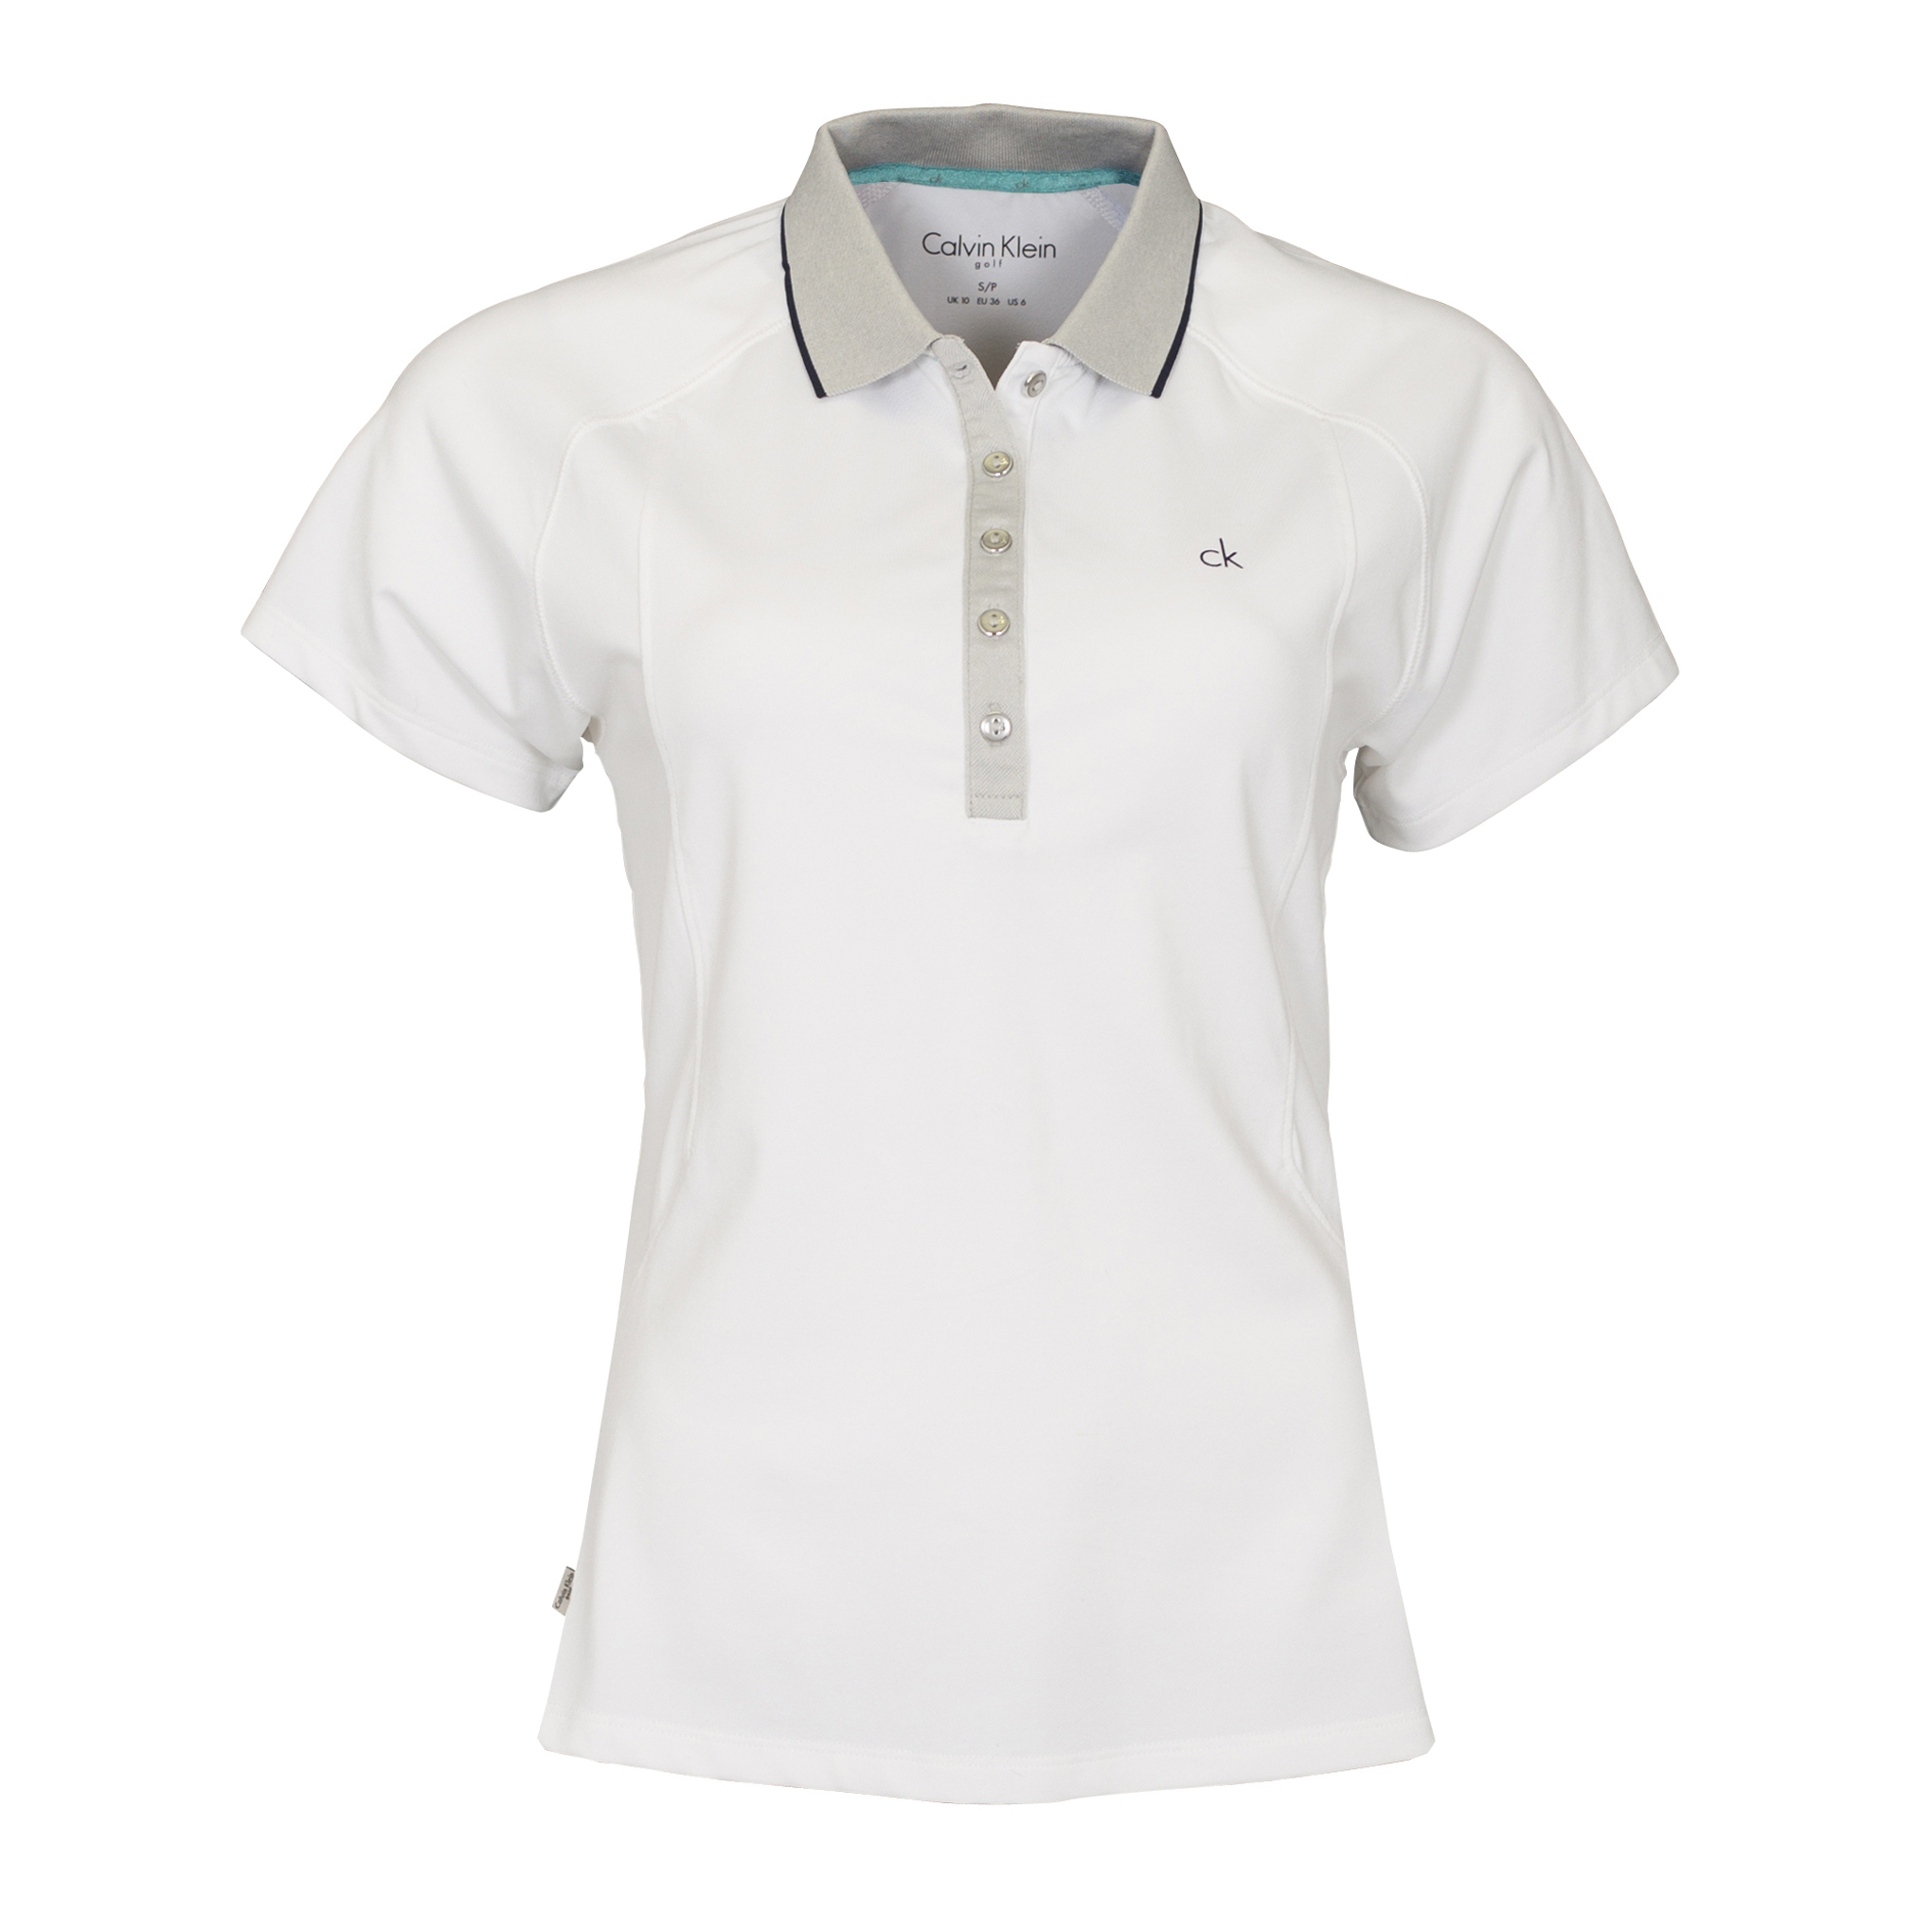 NEW-Calvin-Klein-Ladies-Polo-Shirt-CK-Short-Sleeve-Sport-Top-Golf-64-OFF-RRP